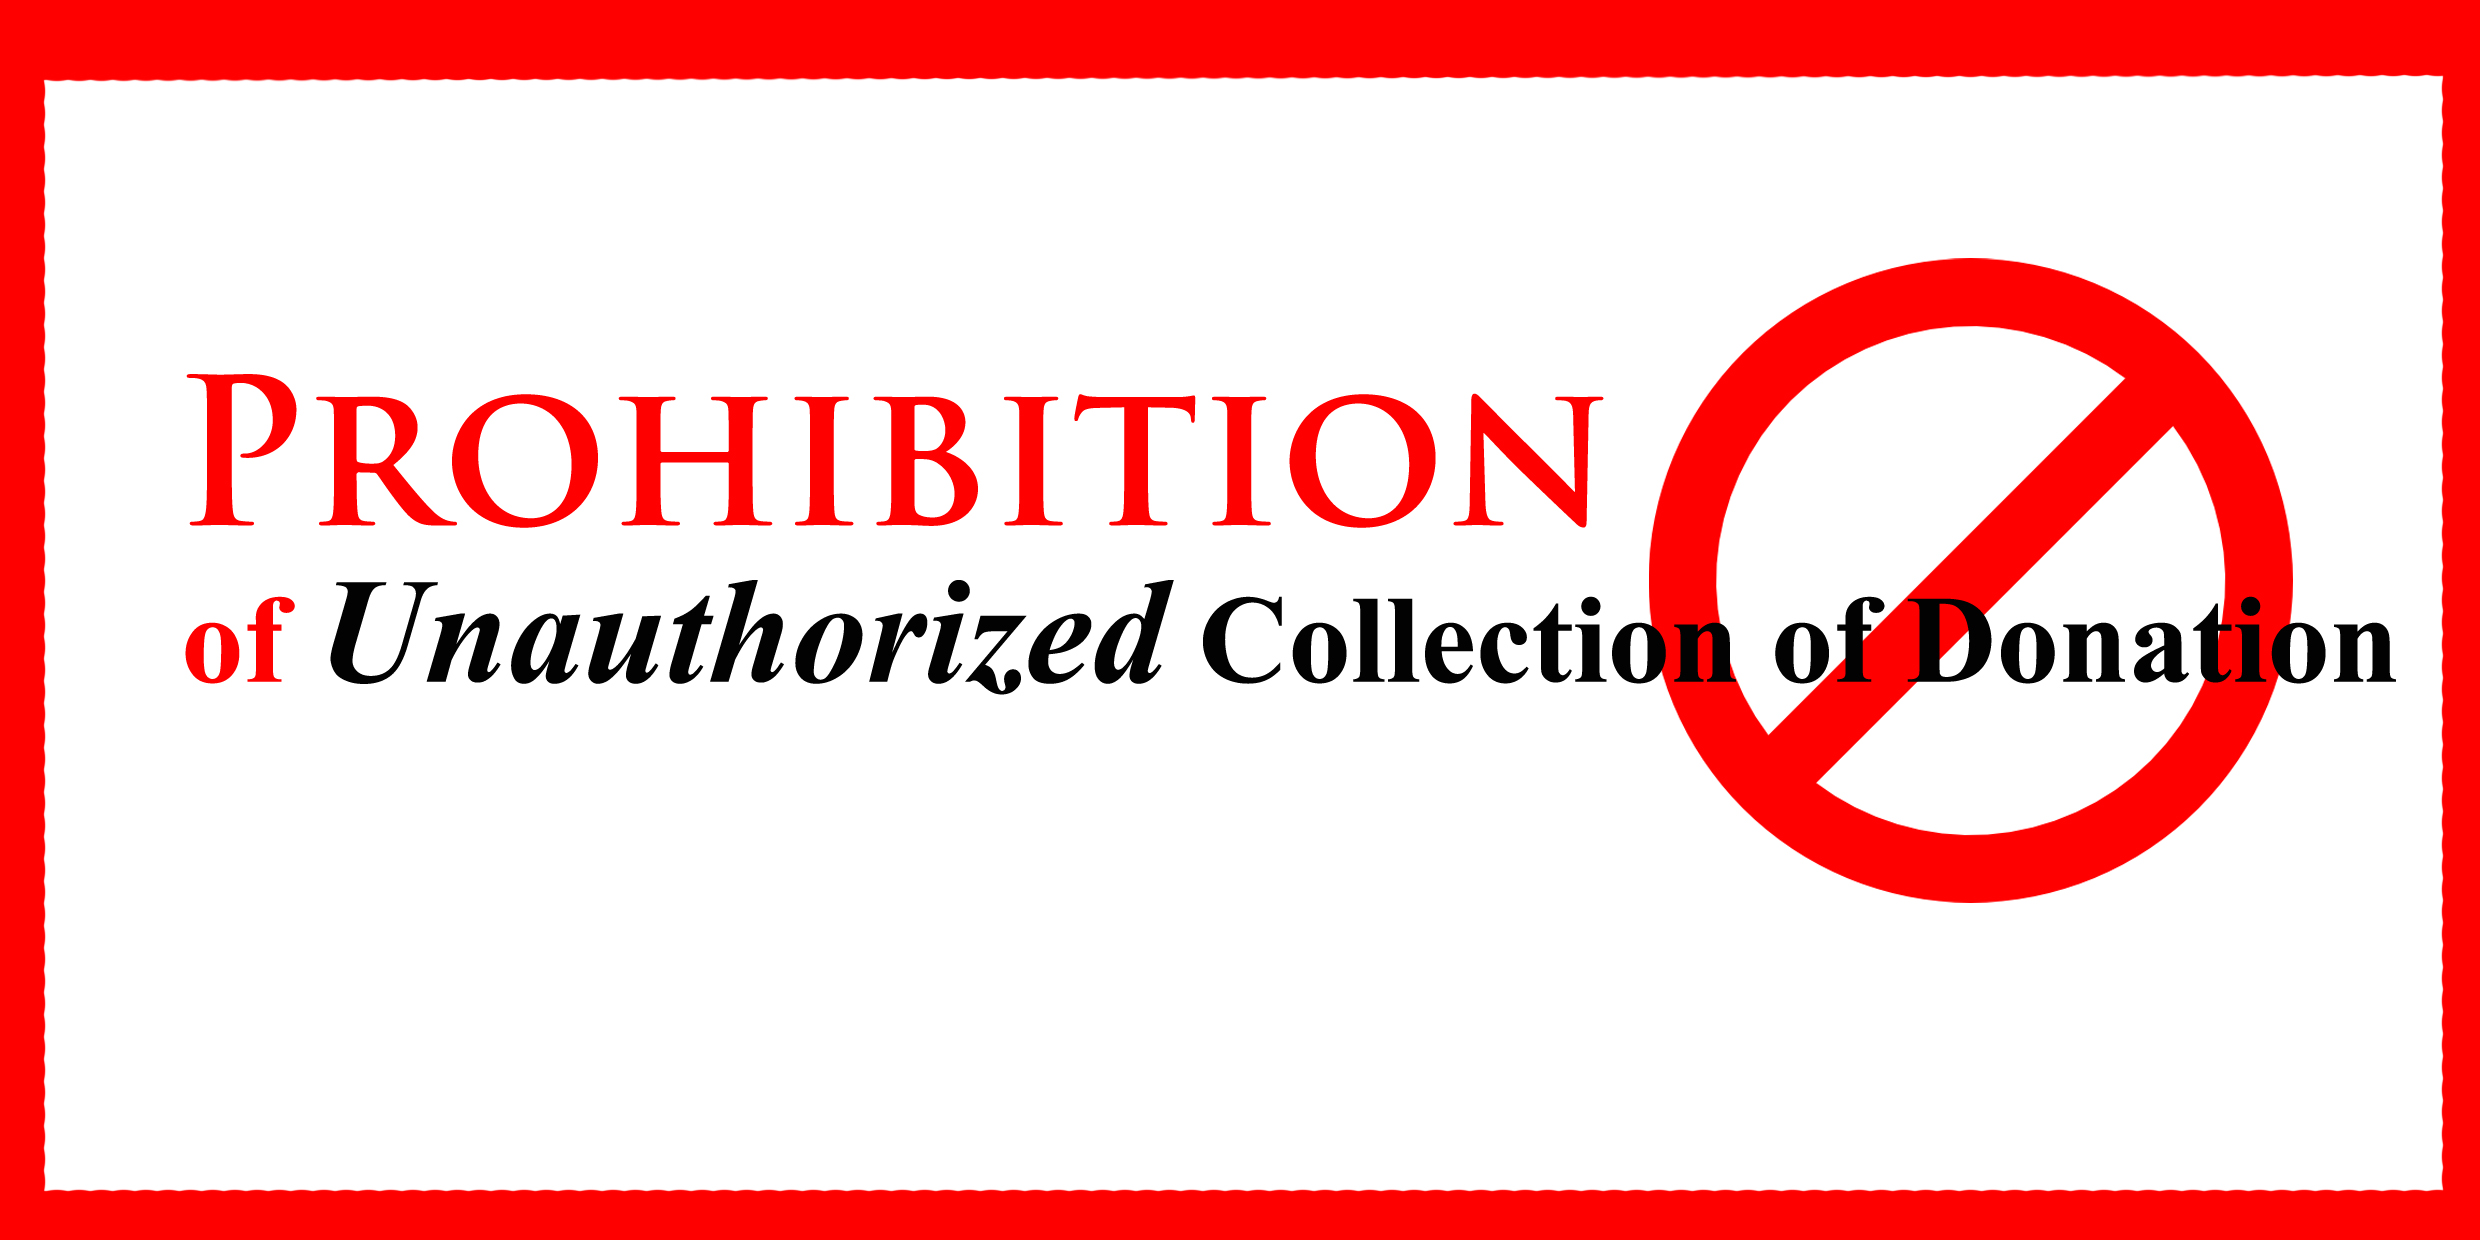 Prohibition of Unauthorized Collection of Donation